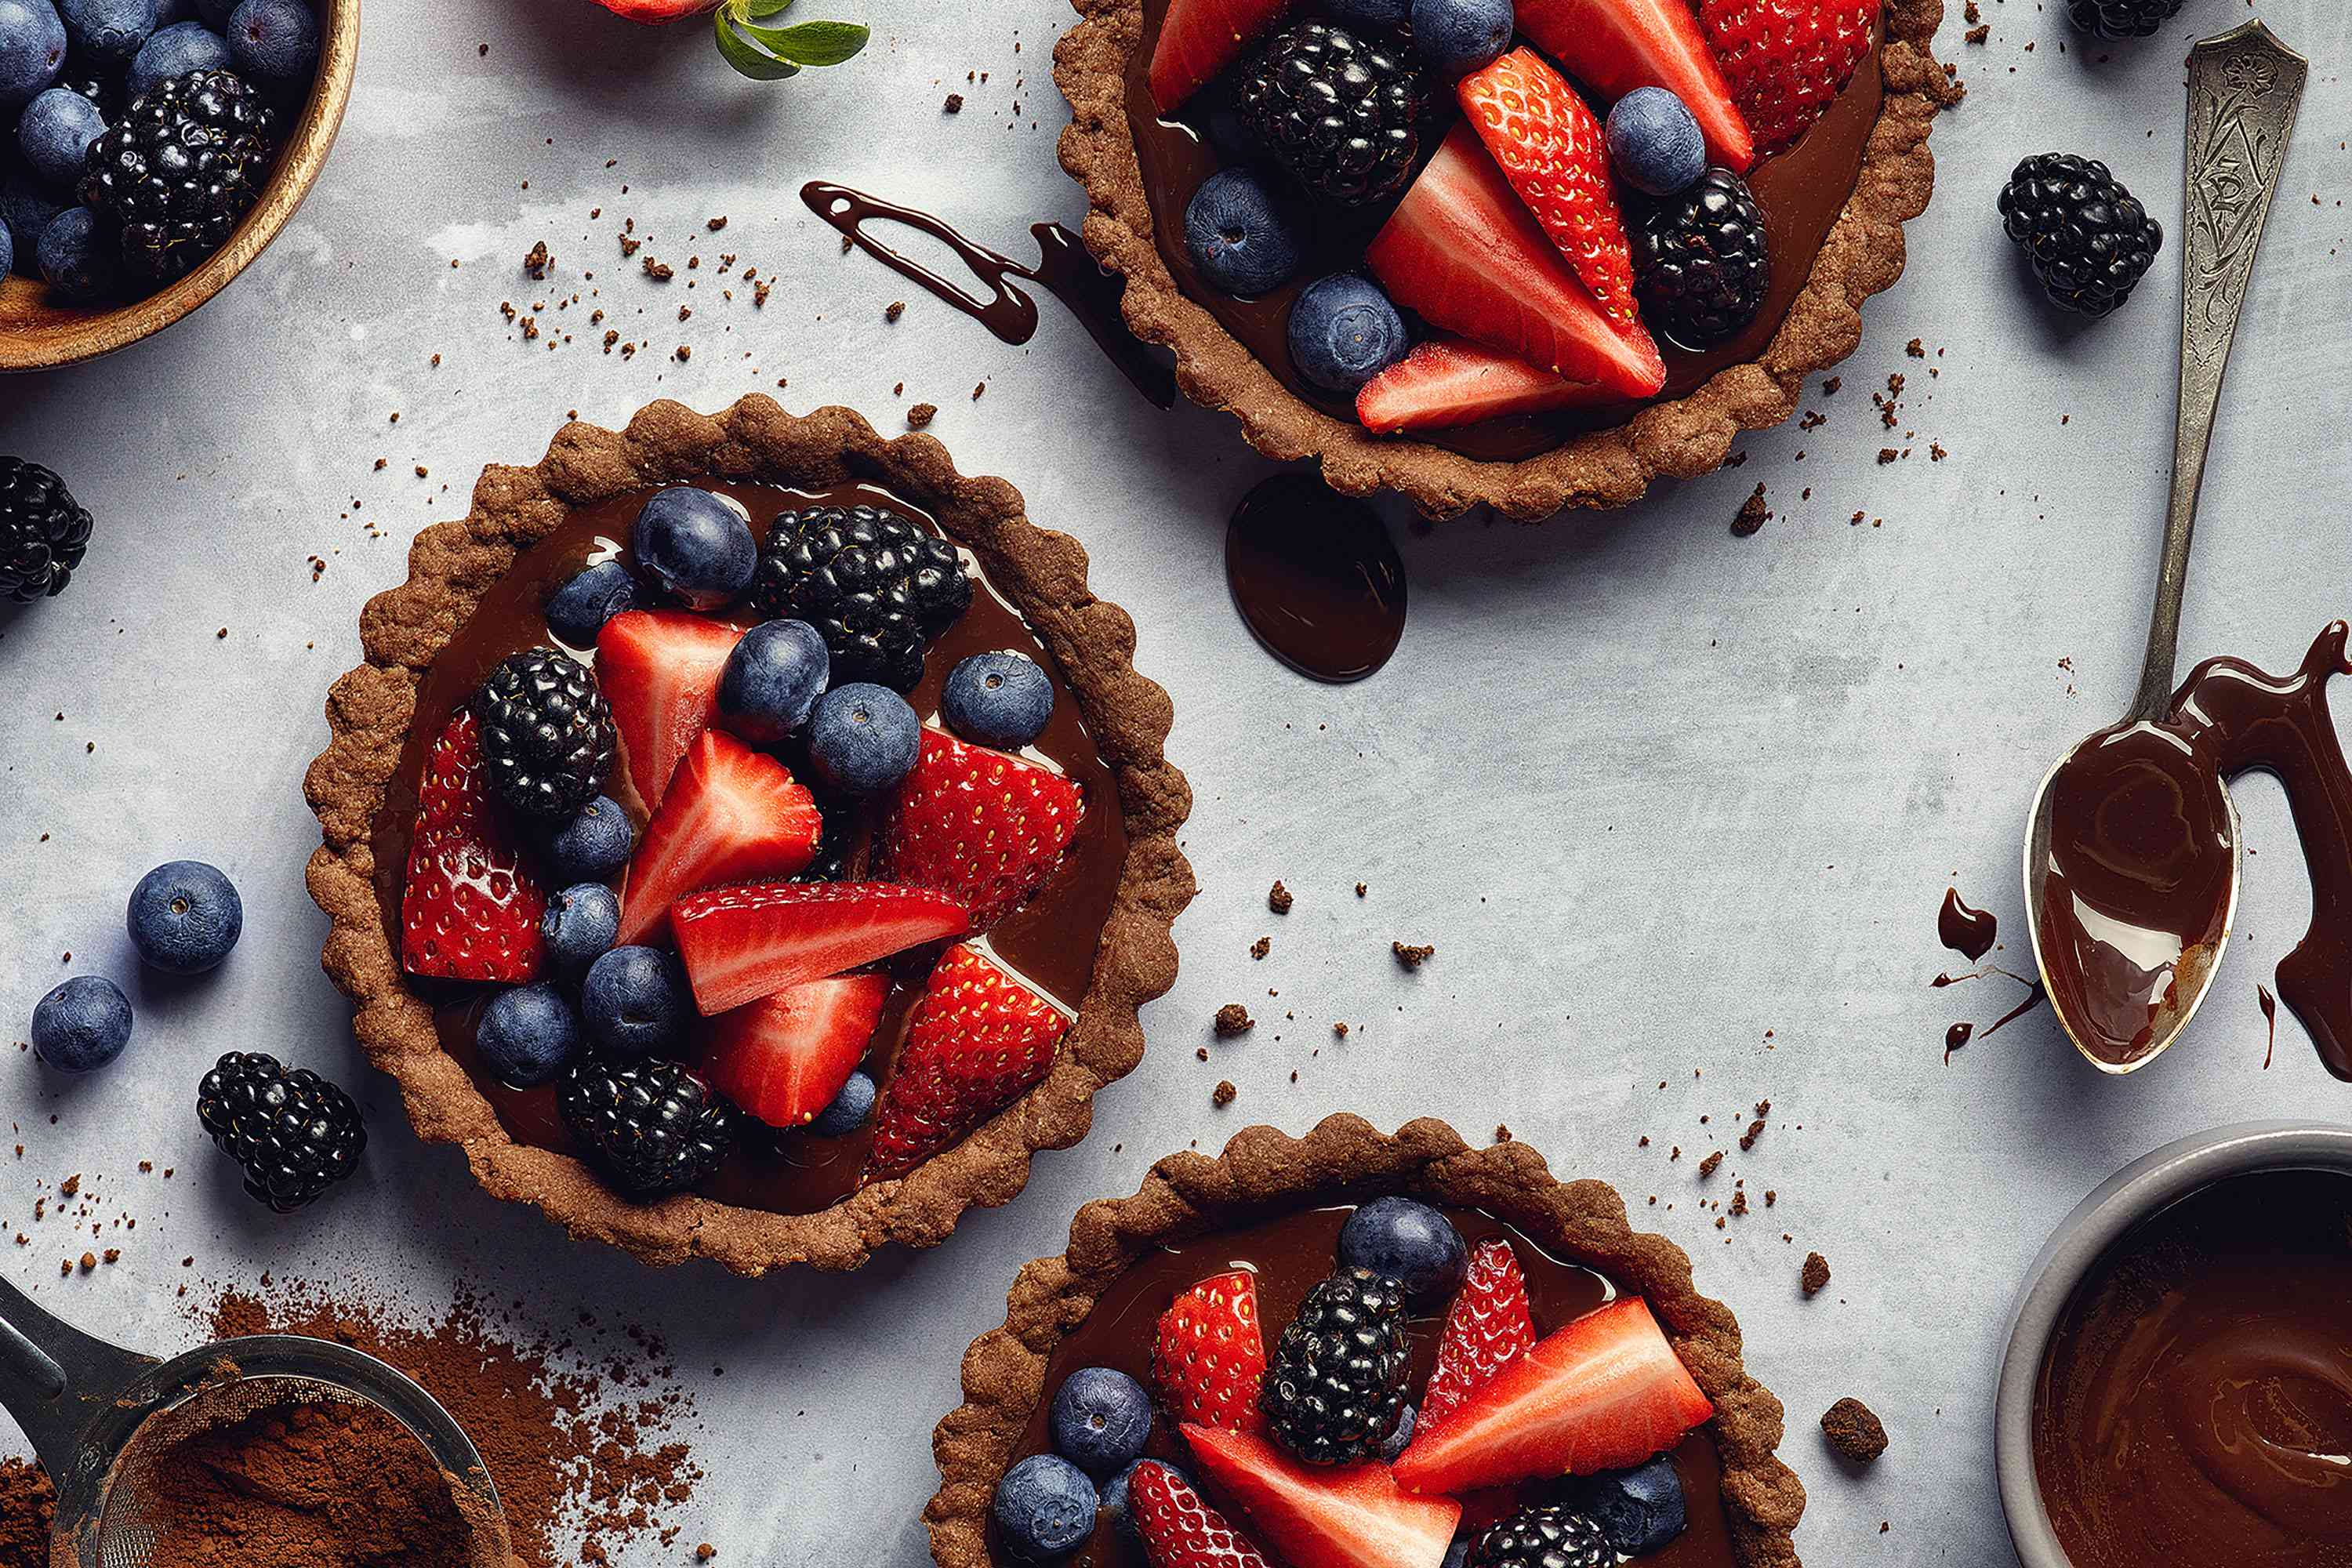 Chocolate pie crust filled with berries